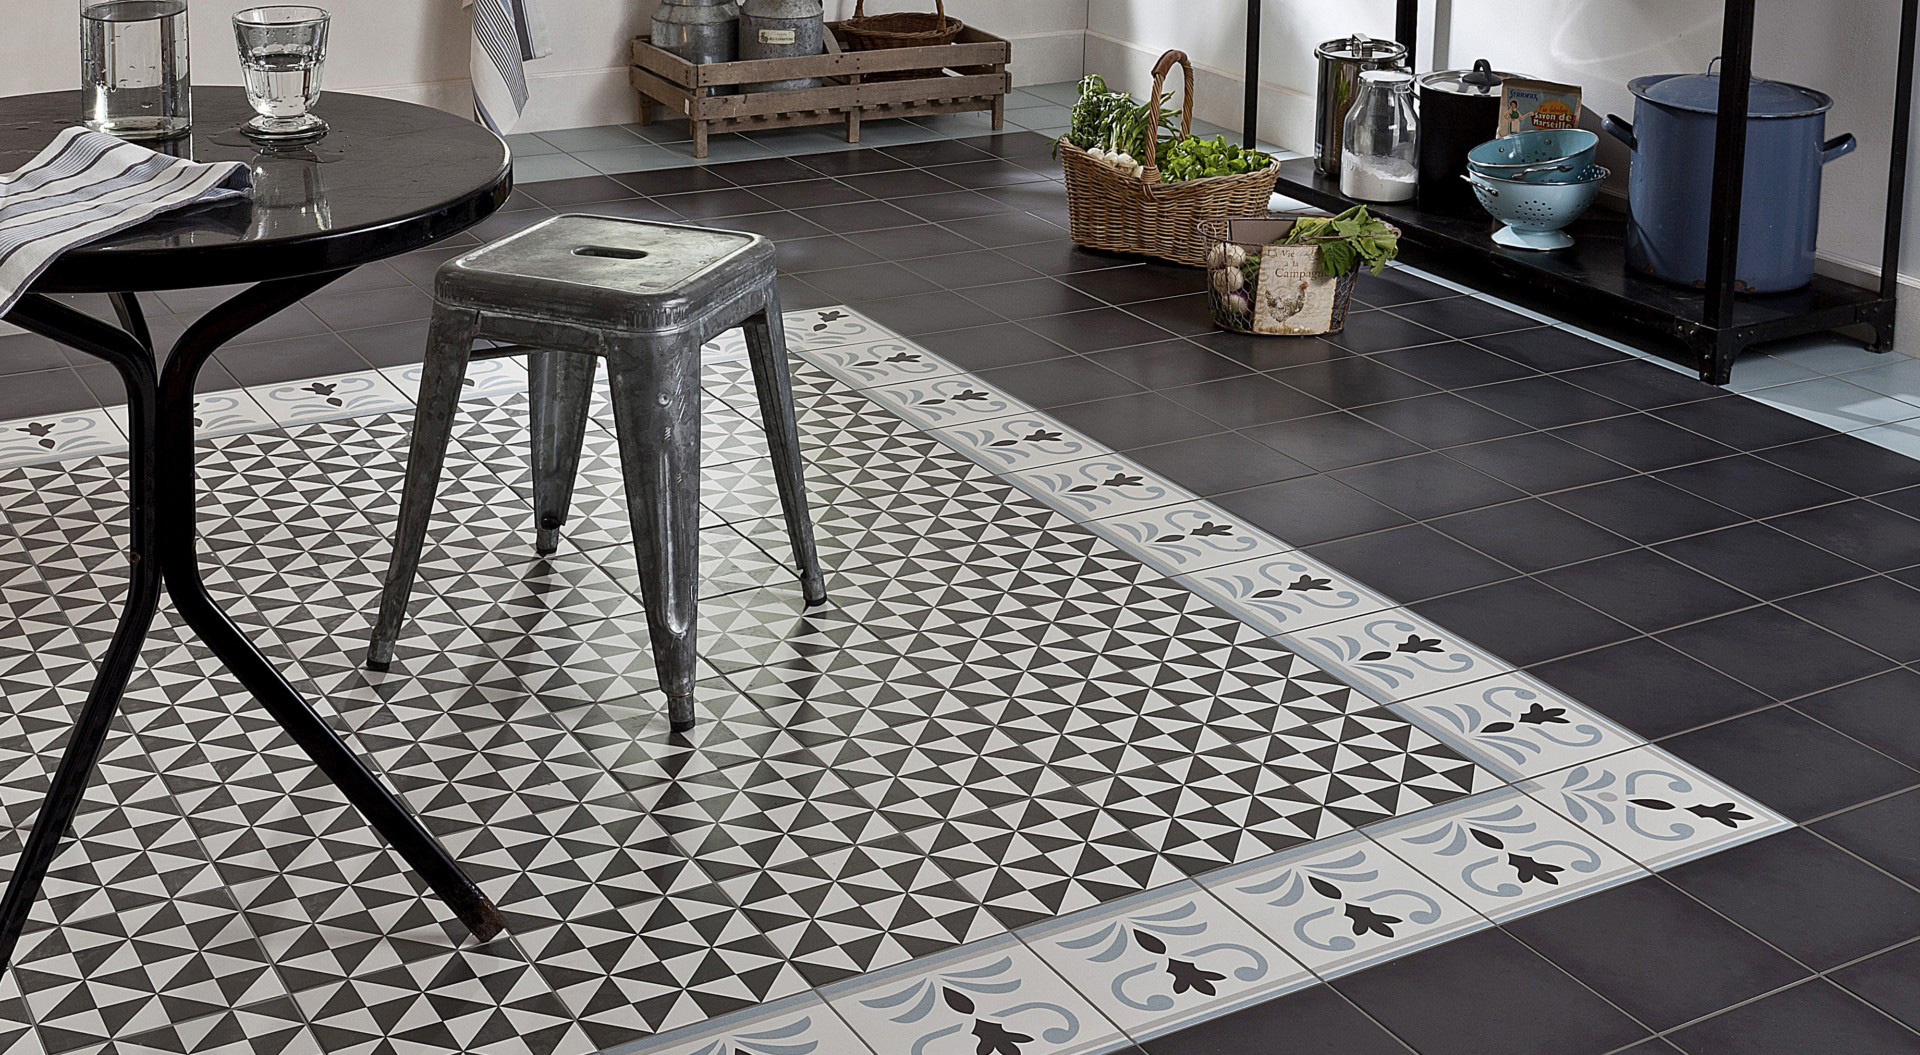 Carreaux de ciment 5 bonnes raisons d 39 adopter la for Carrelage aspect carreaux de ciment